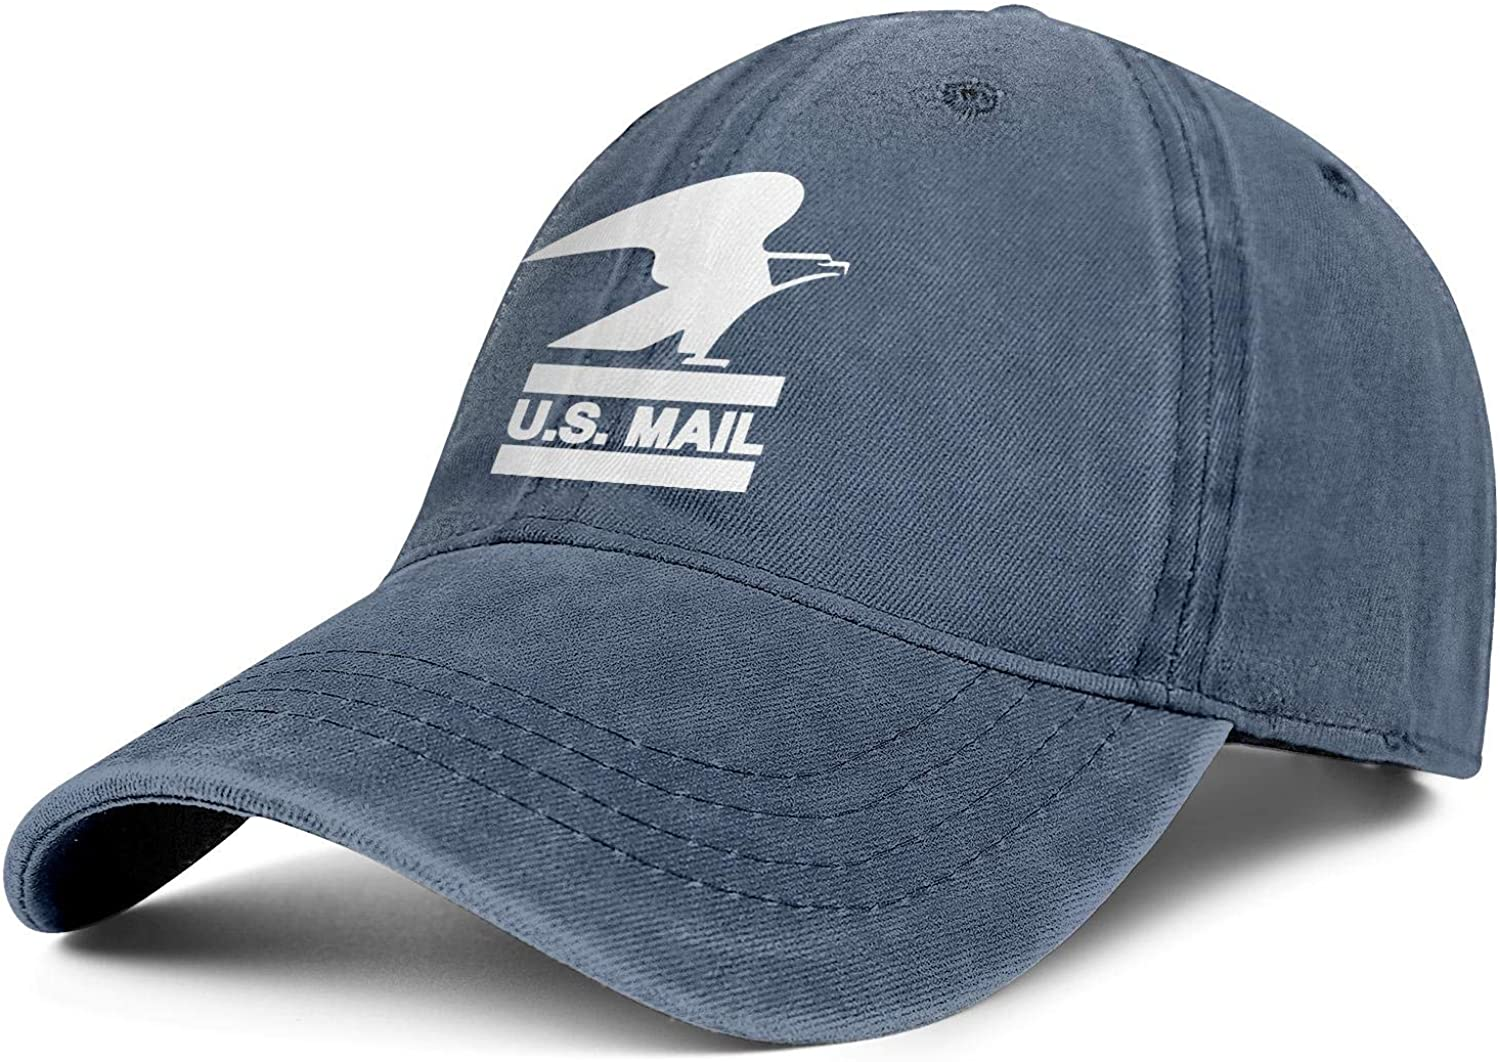 U.s-Mail-White-USPS-United-States-Postal-Service-Logo-Stylish Denim Adjustable Dad Dance Hat for Mens